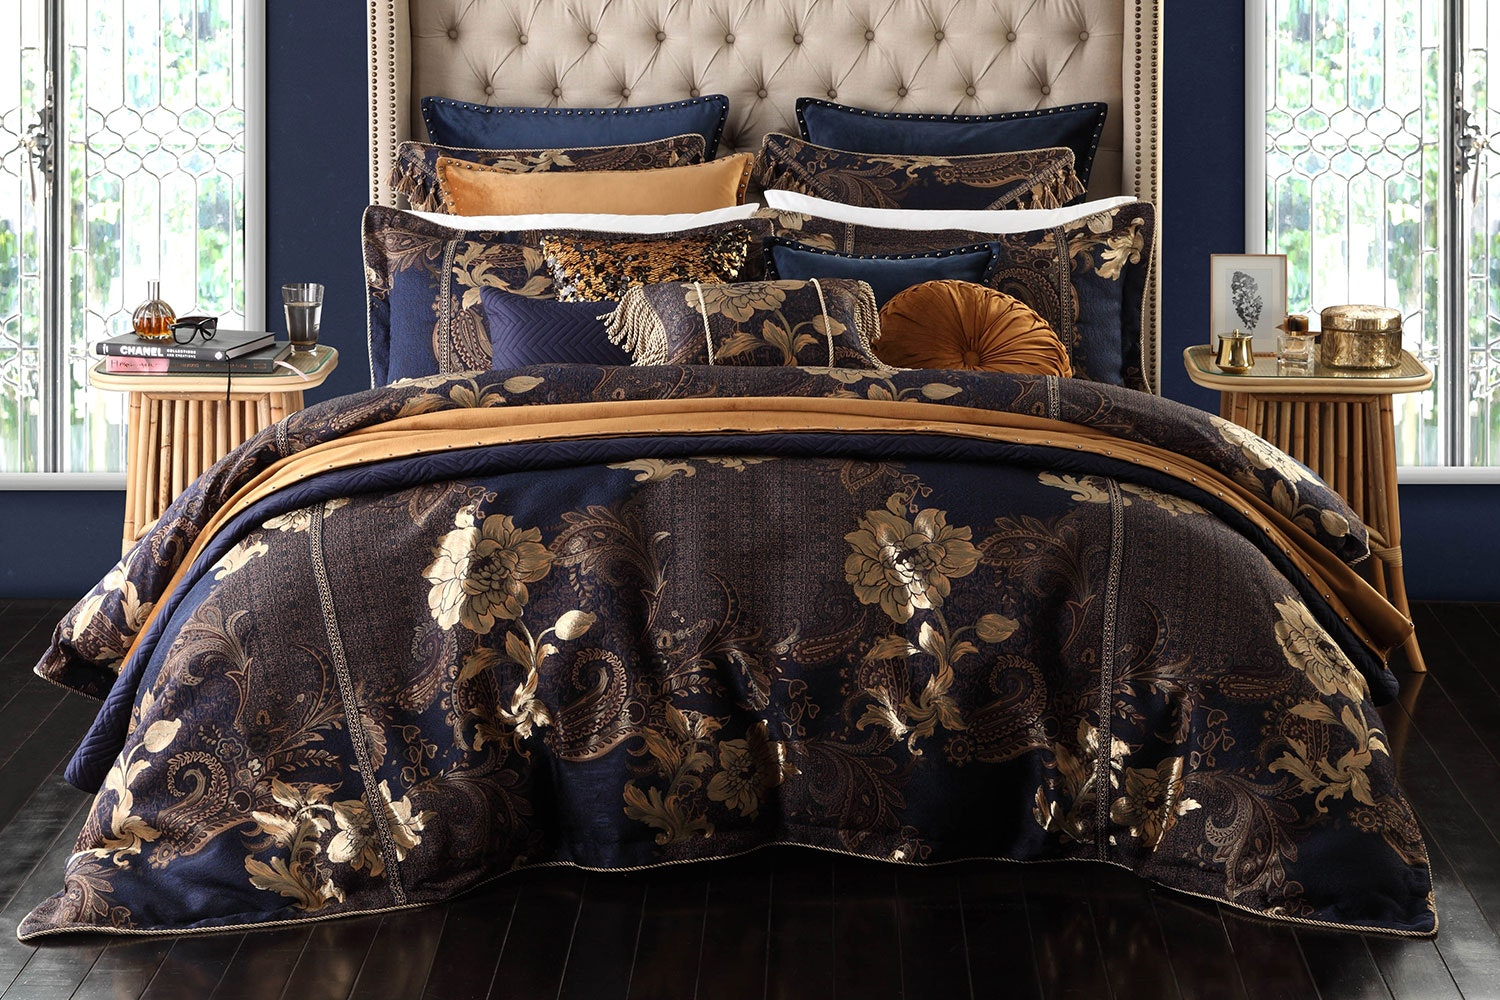 Torelli Navy Duvet Cover Set by Da Vinci